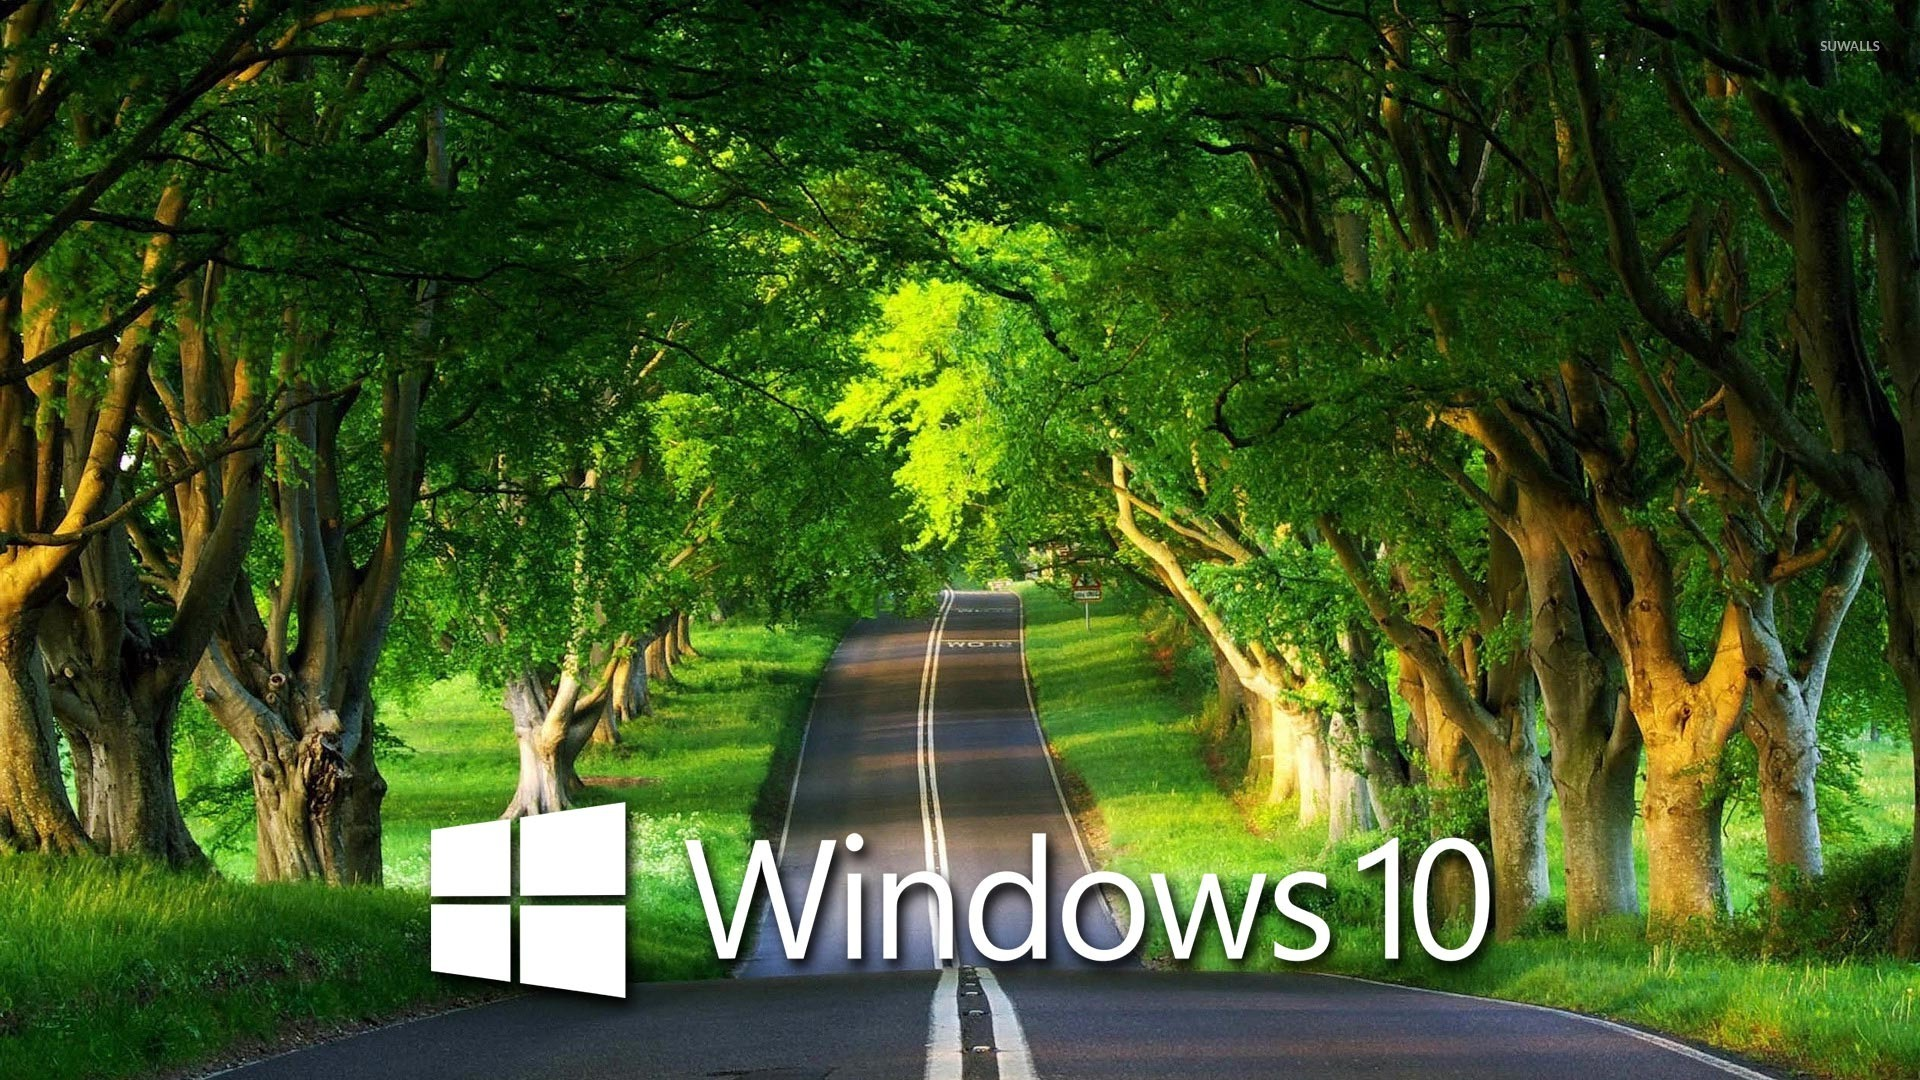 Windows 10 Over The Country Road [4] Wallpaper